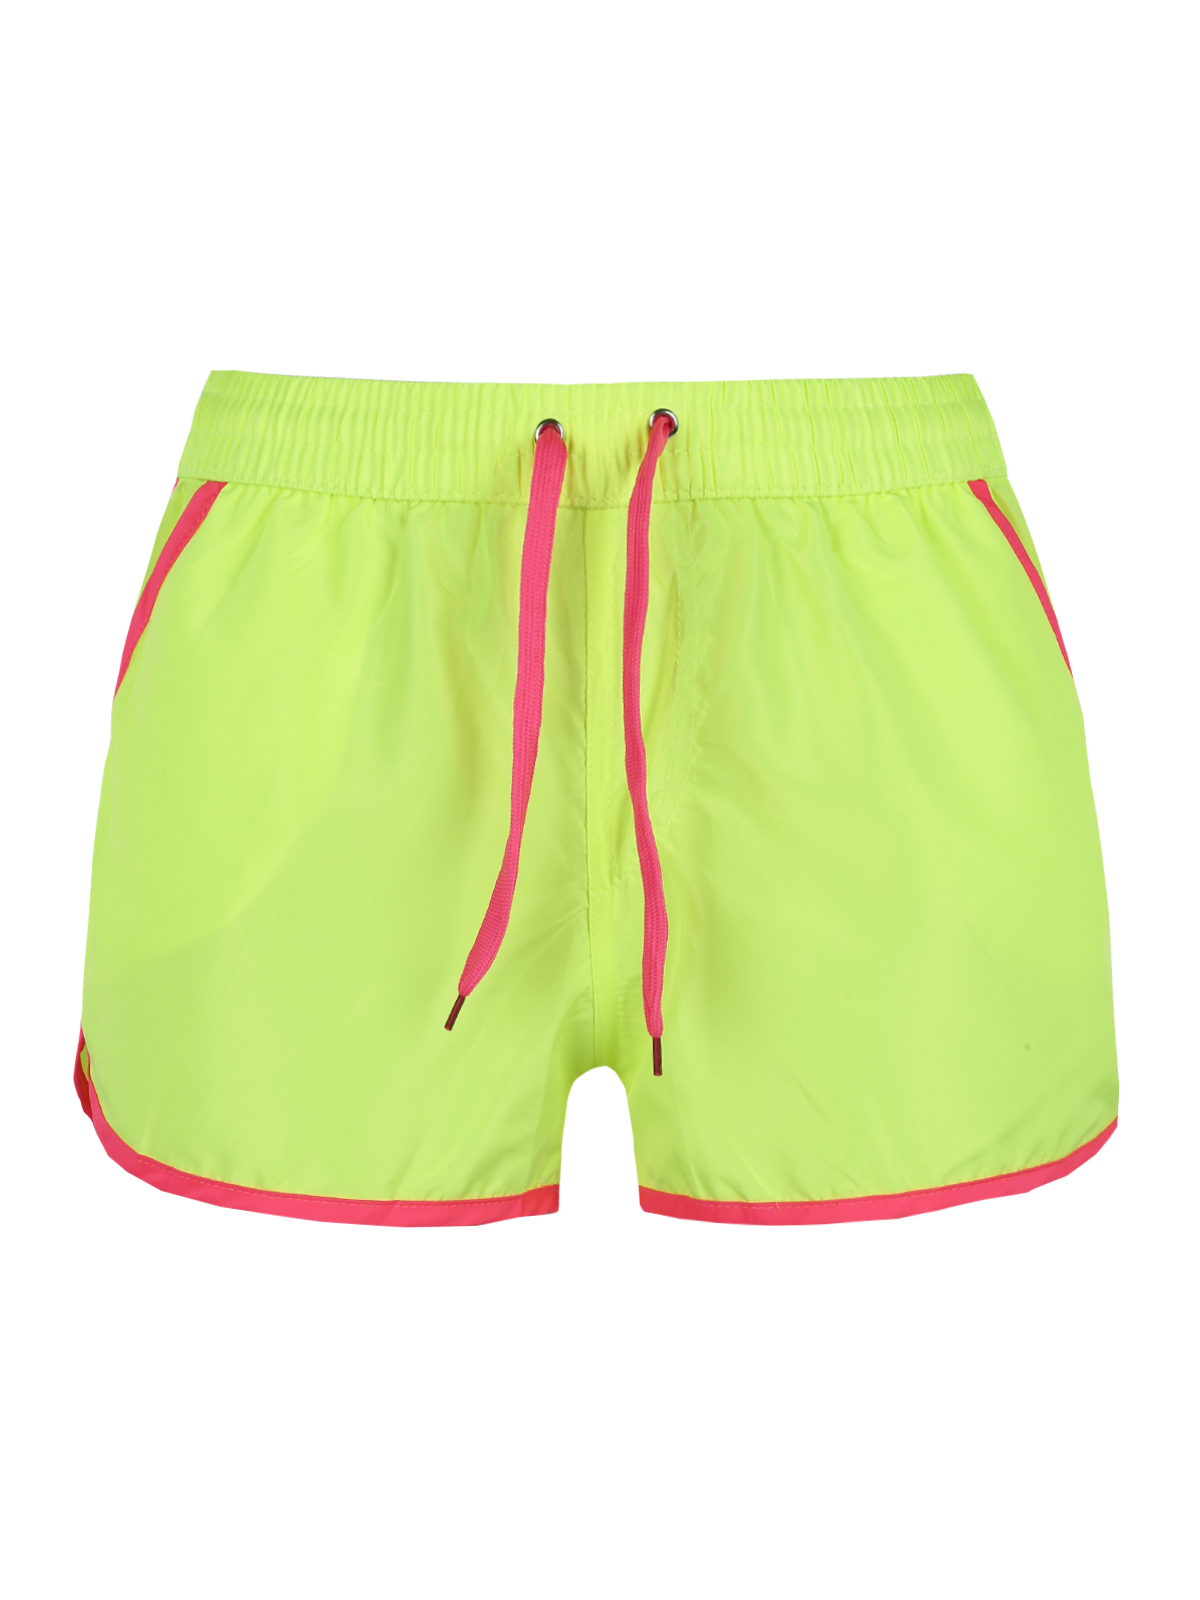 Shorts Beach Colorful